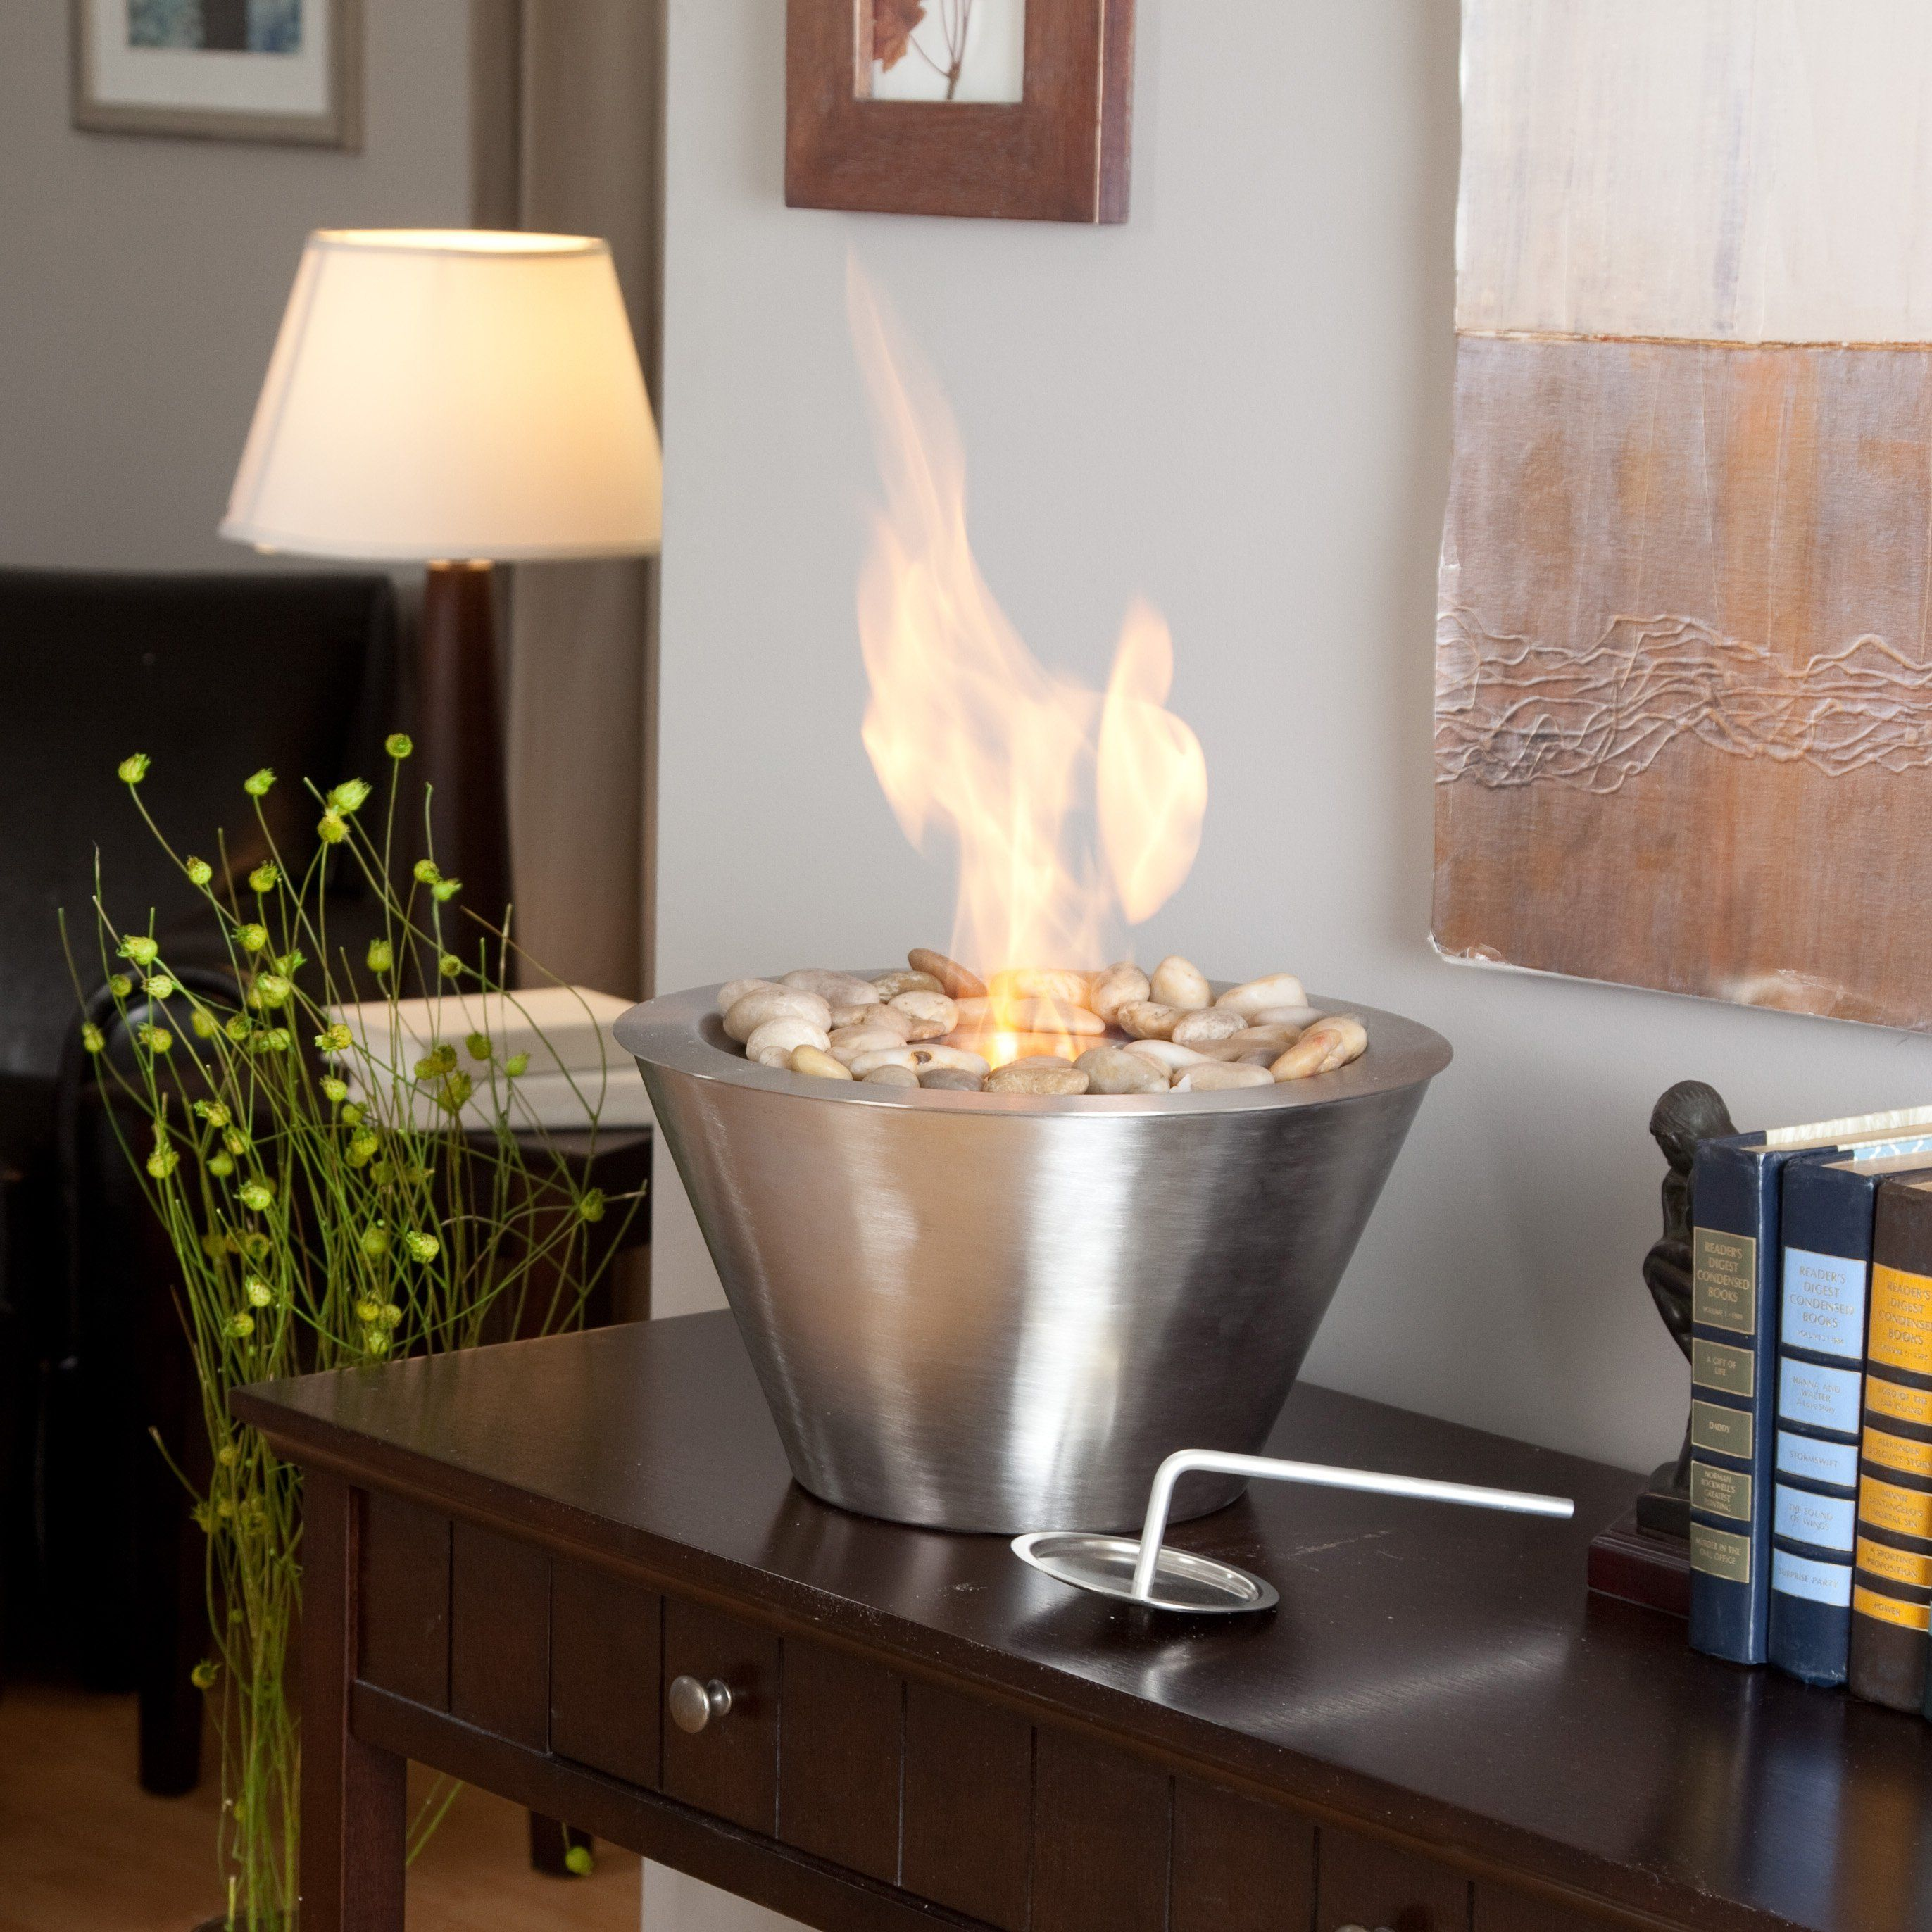 Anywhere Fireplace Oasis Table Top Indoor / Outdoor Fireplace   Enjoy A  Warm, Flickering Fire Anytime, Anywhere With The Anywhere Fireplace Oasis Table  Top ...